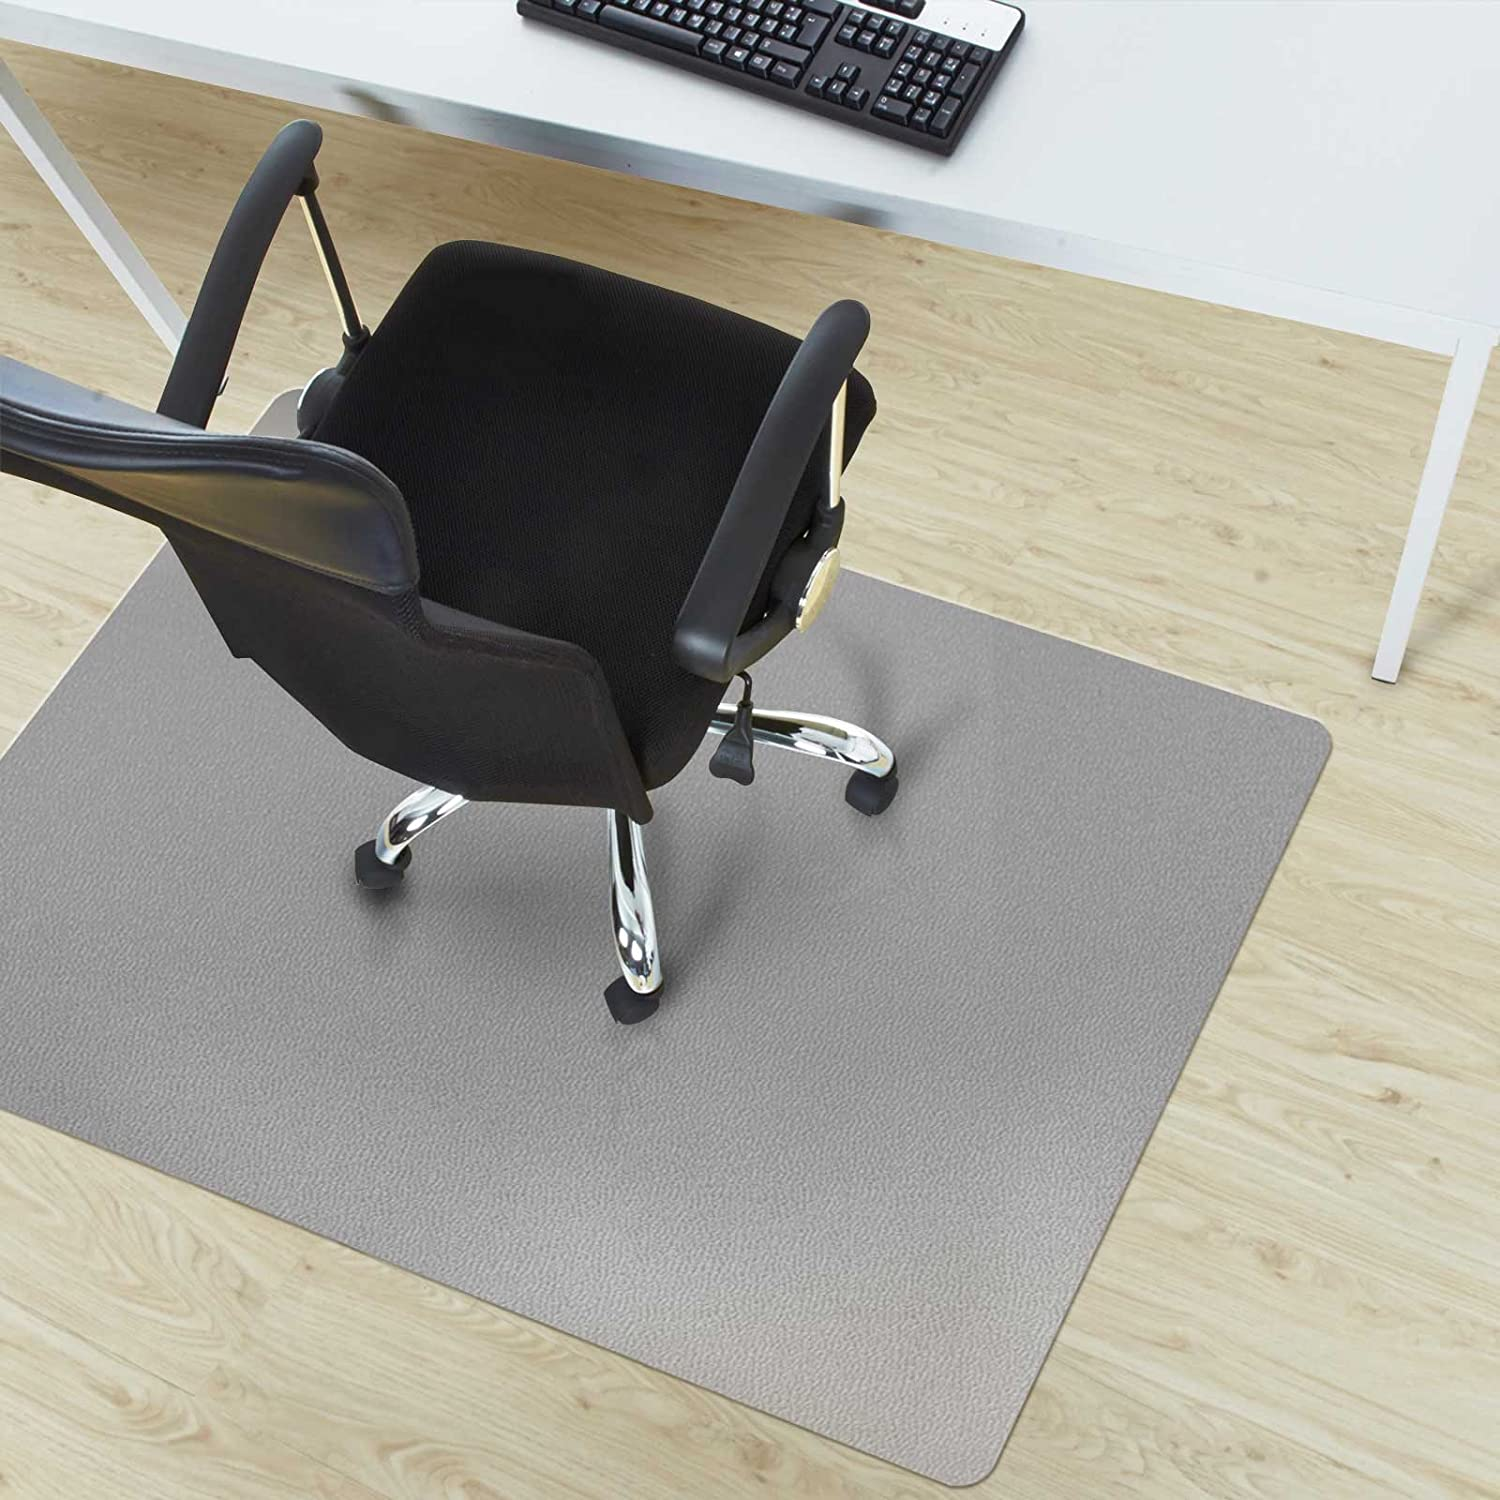 Amazon.com : Chair Mat For Hard Floors | Polypropylene Chair Floor  Protector | Colored Floor Mat For Office And Home | 100% BPA, Phthalate U0026  Odor Free ...